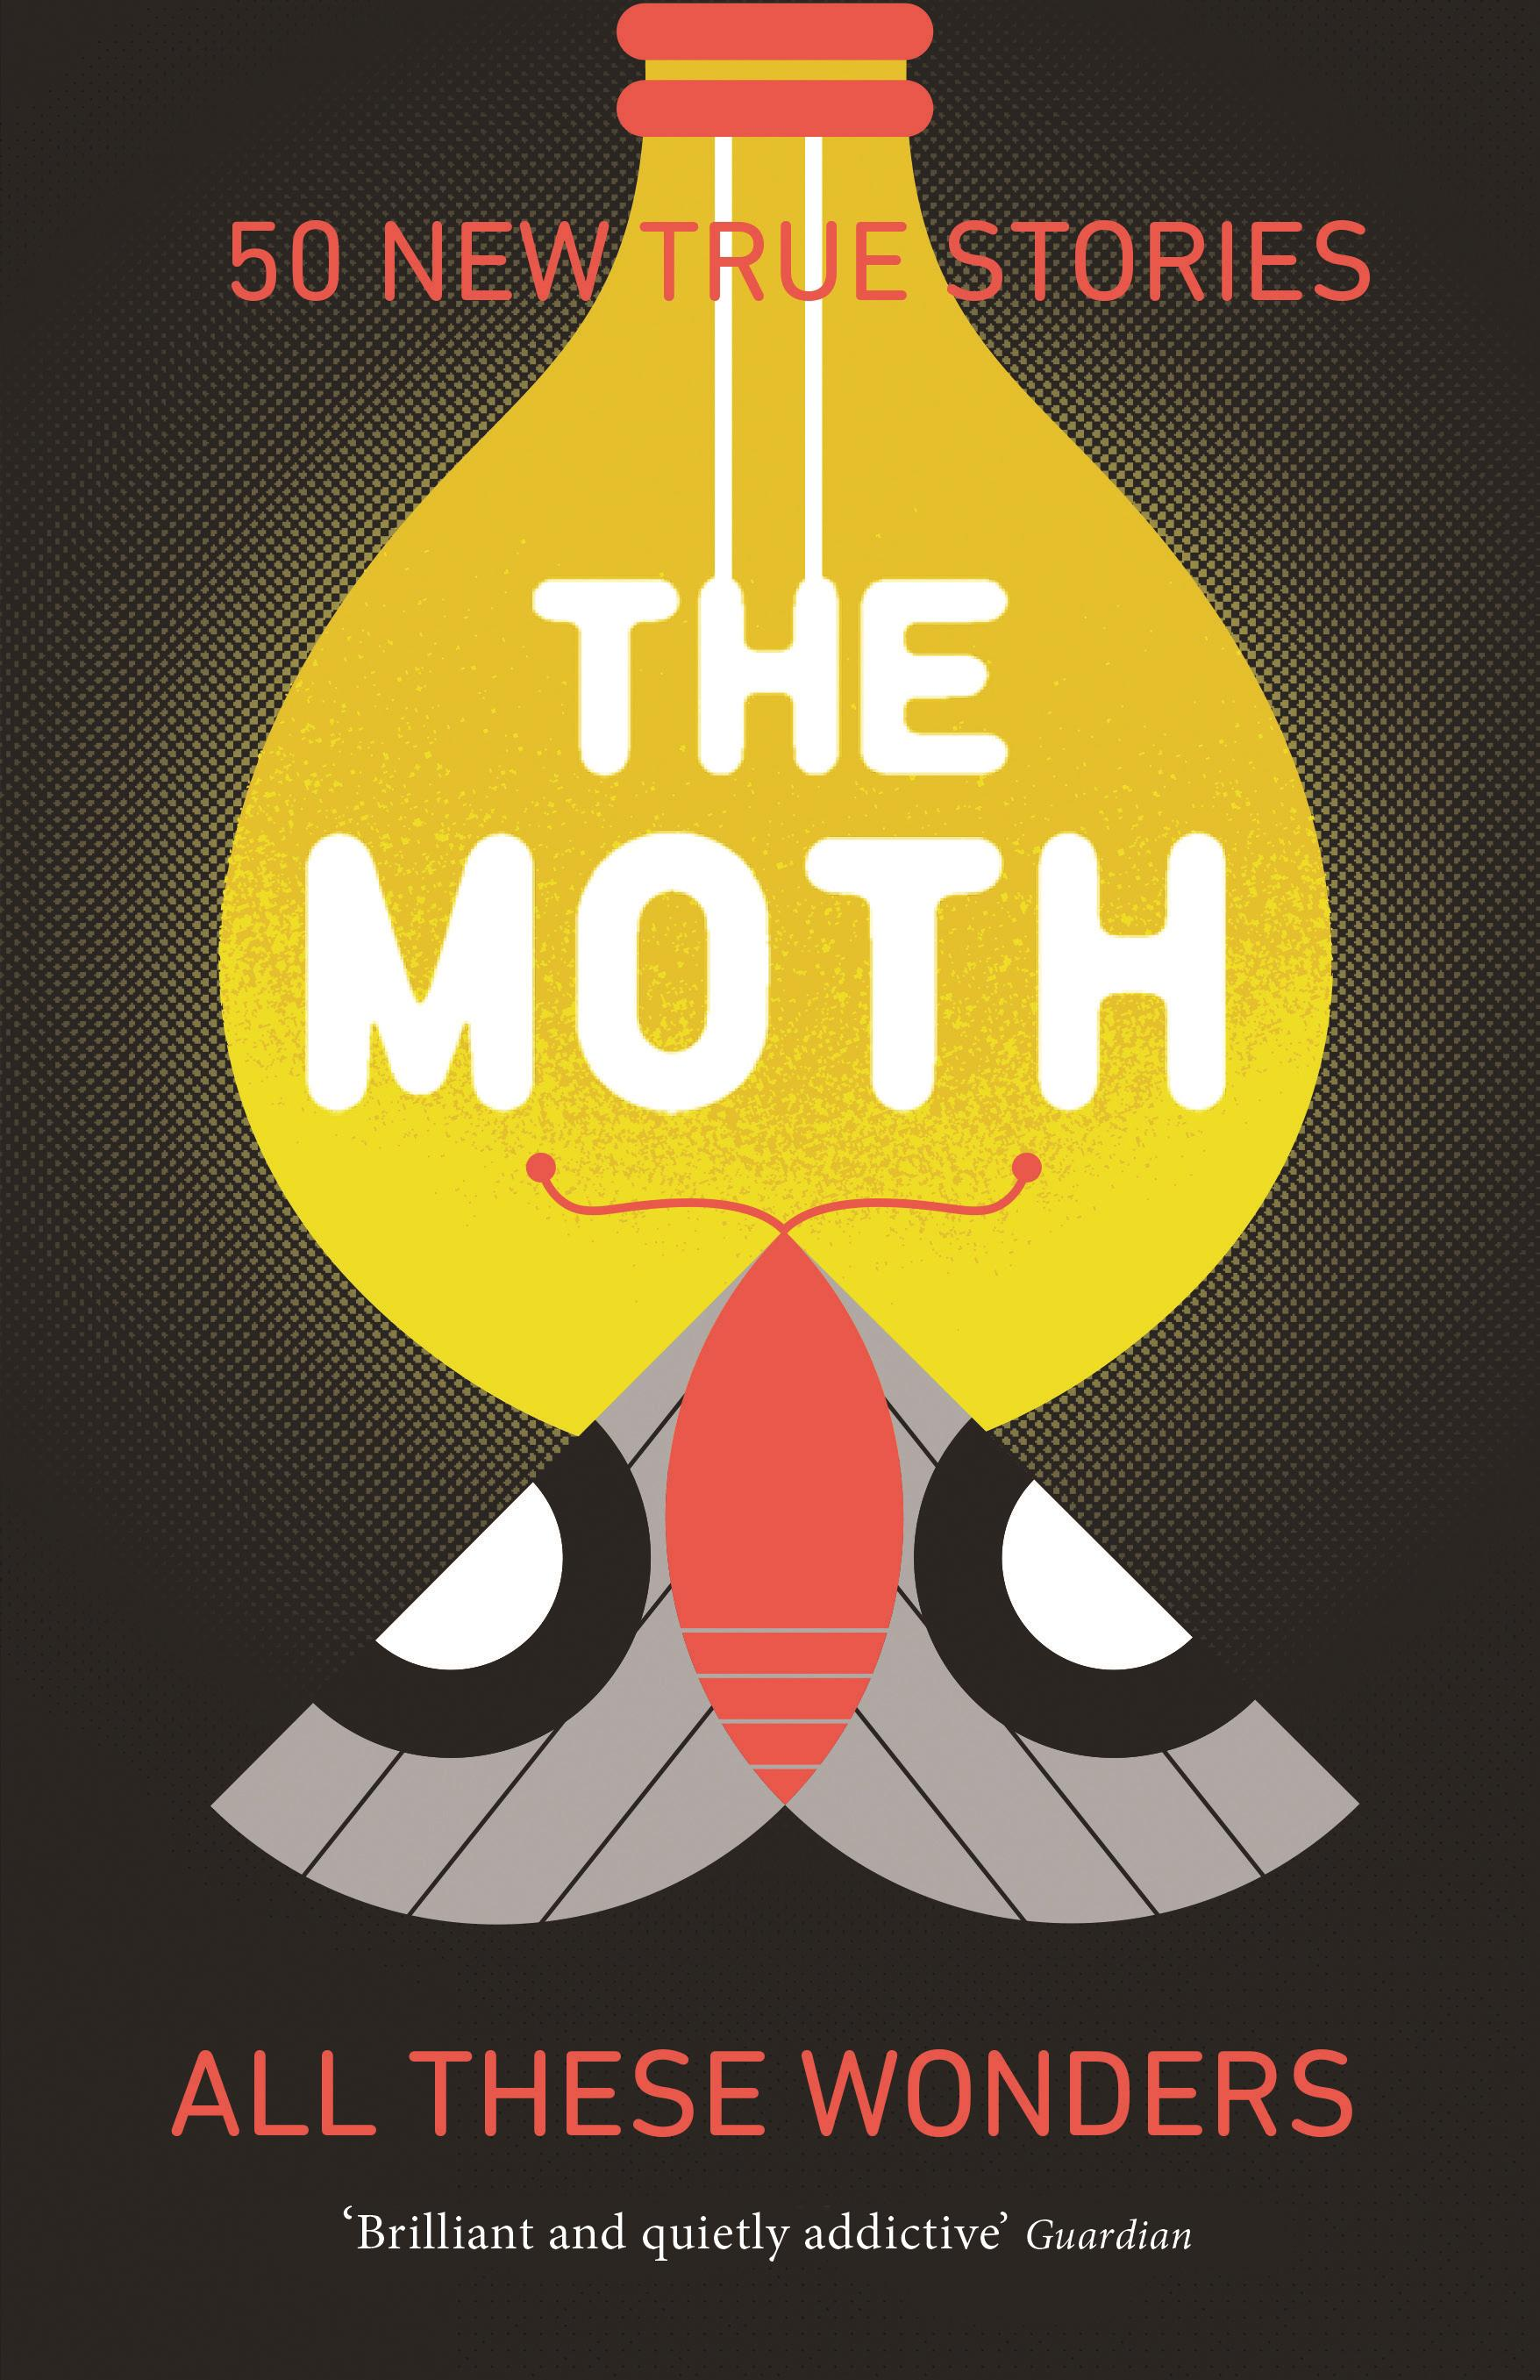 The Moth - All These Wonders: 49 new true stories